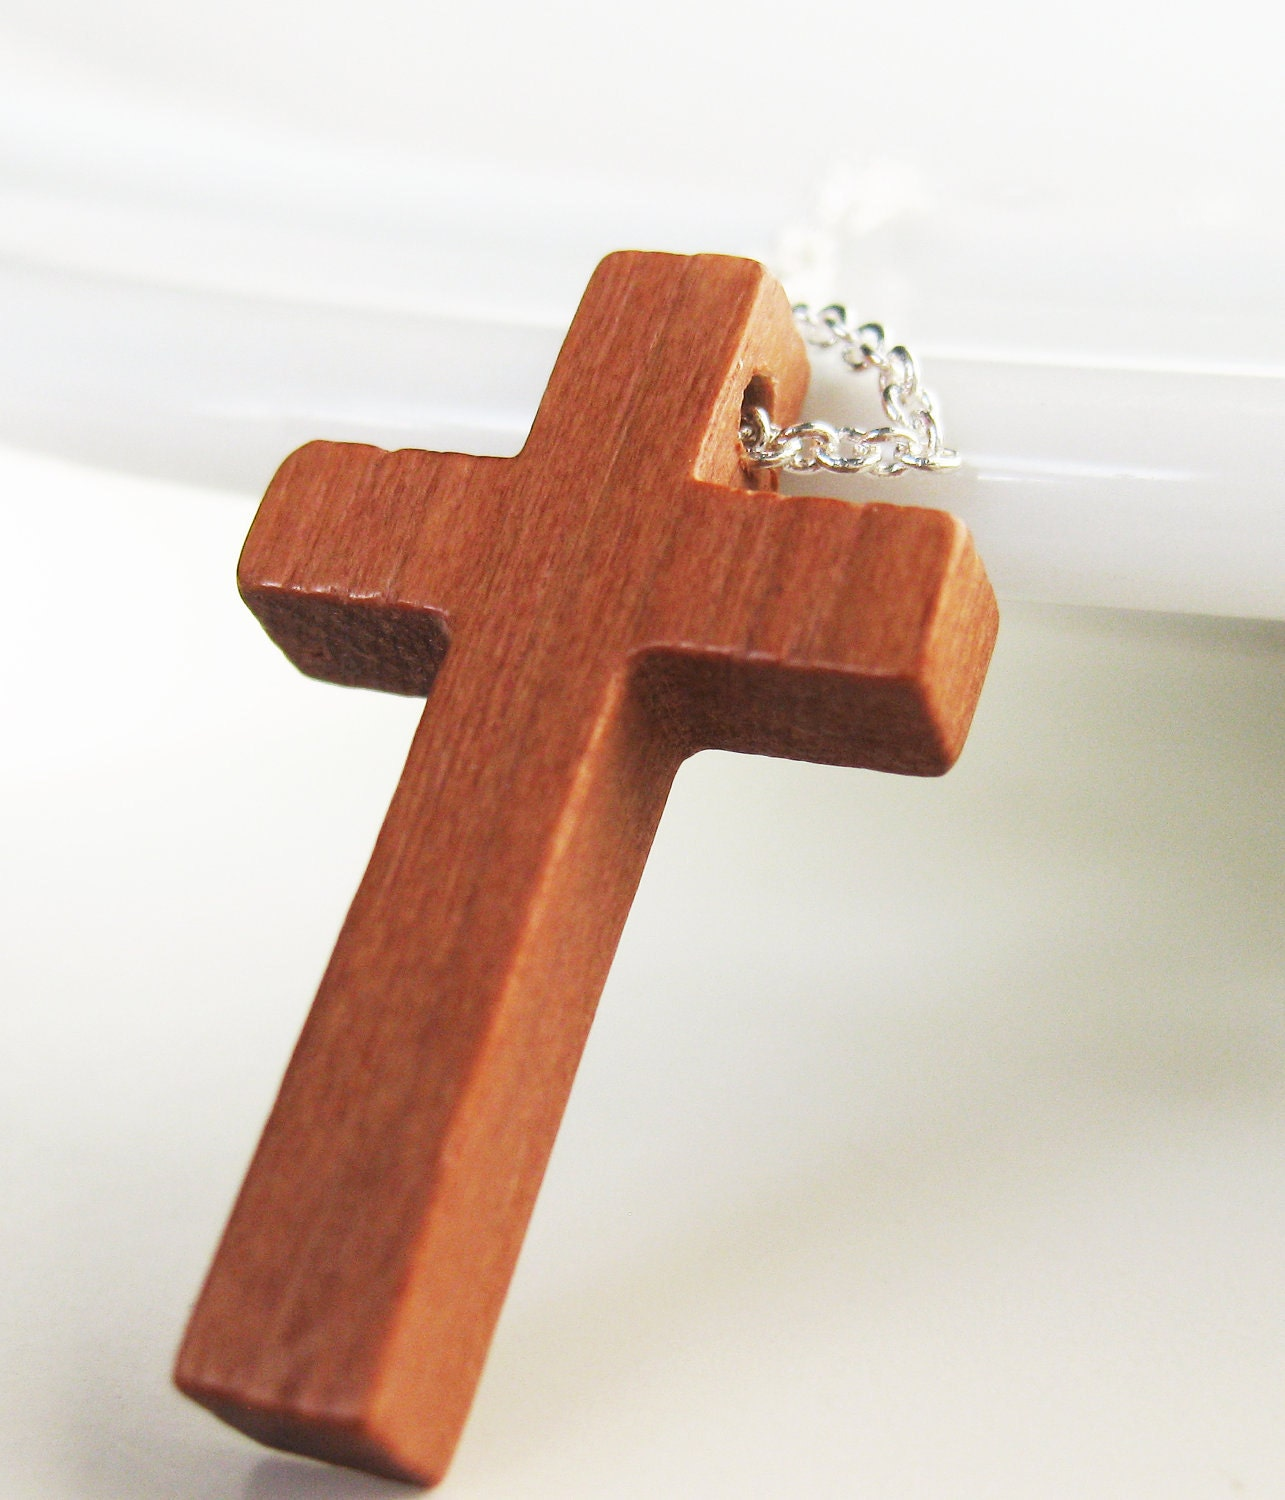 New Wooden Cross Necklace Religious Christian Jewelry